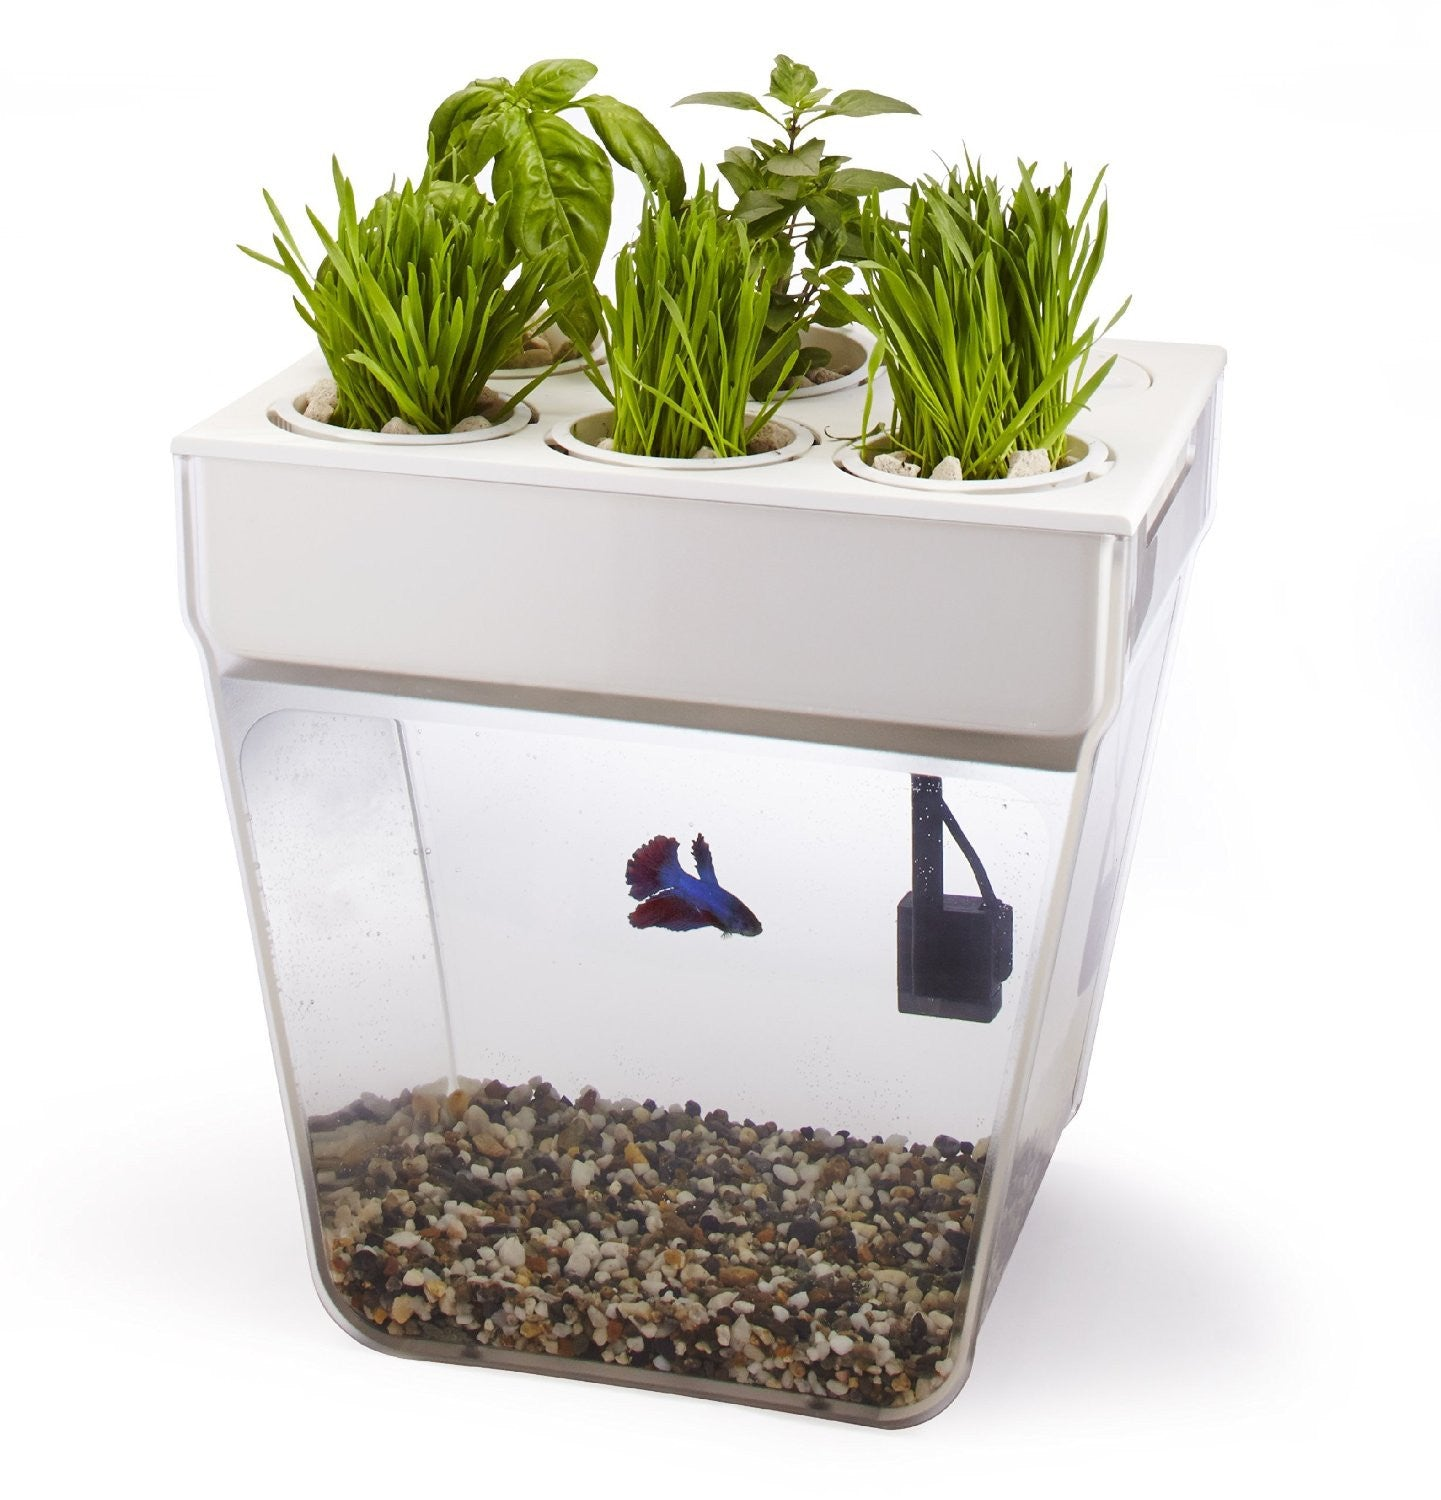 Fish Tank And Planter - OddGifts.com